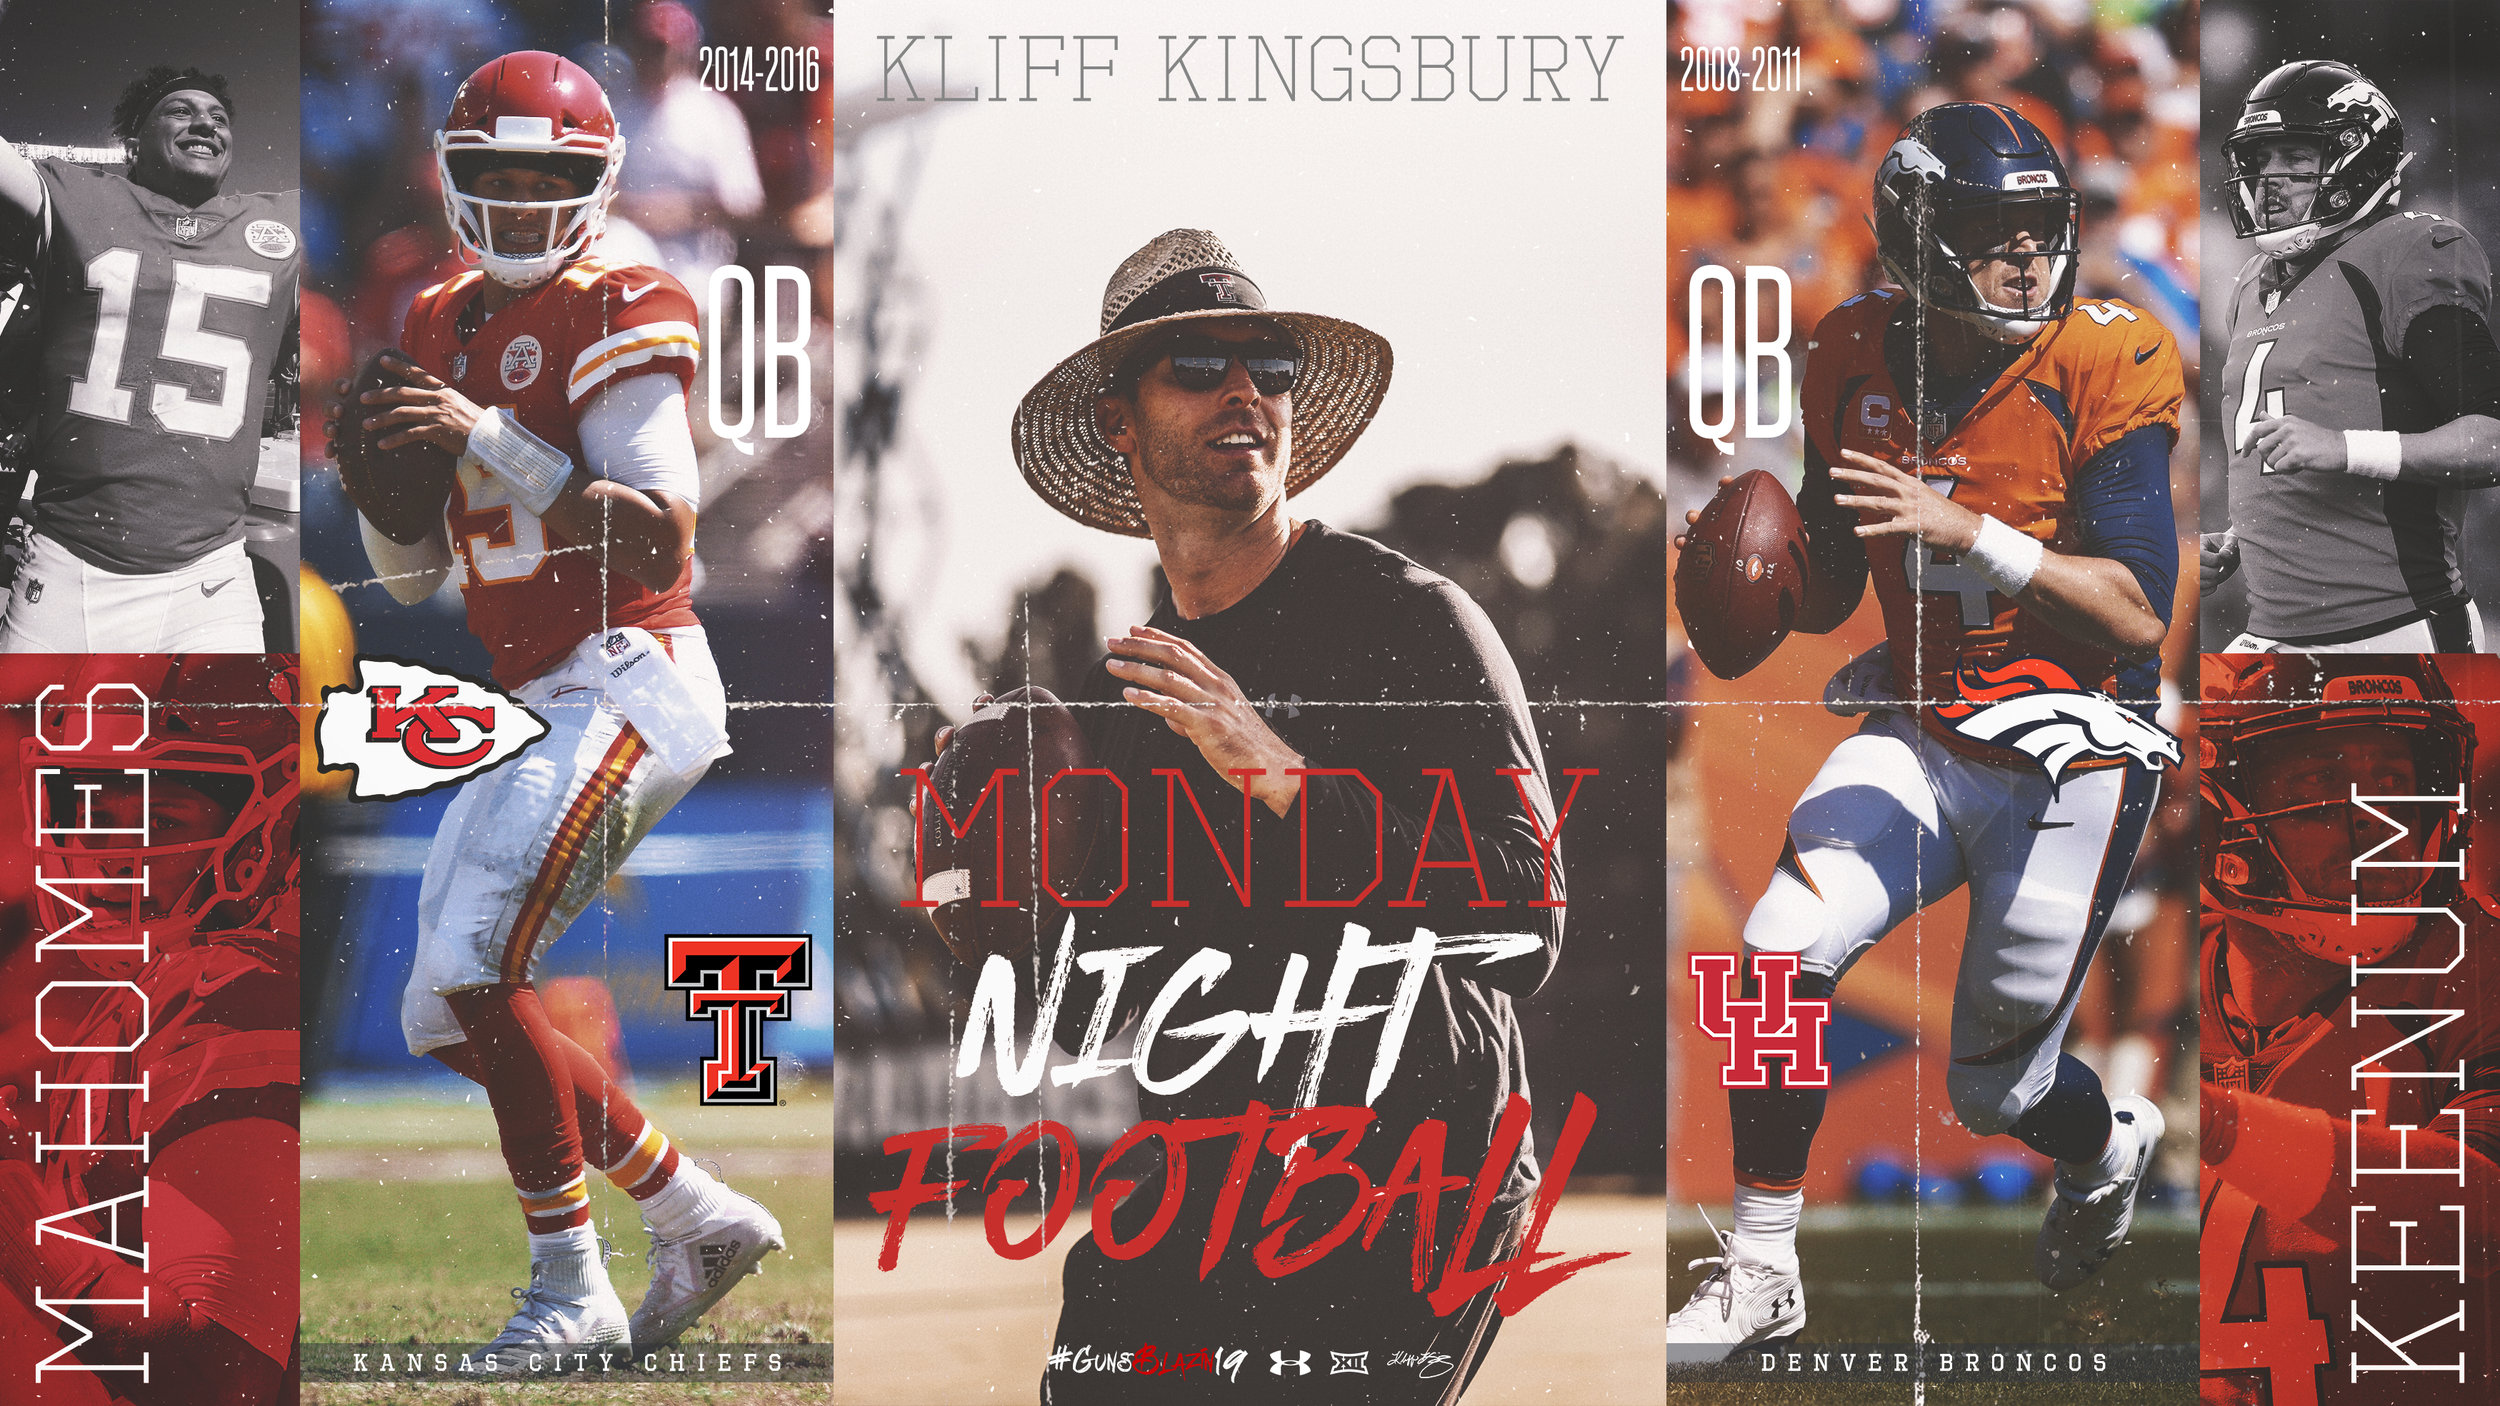 Mahomes VS Keenum Kingsburry Recruit Graphic